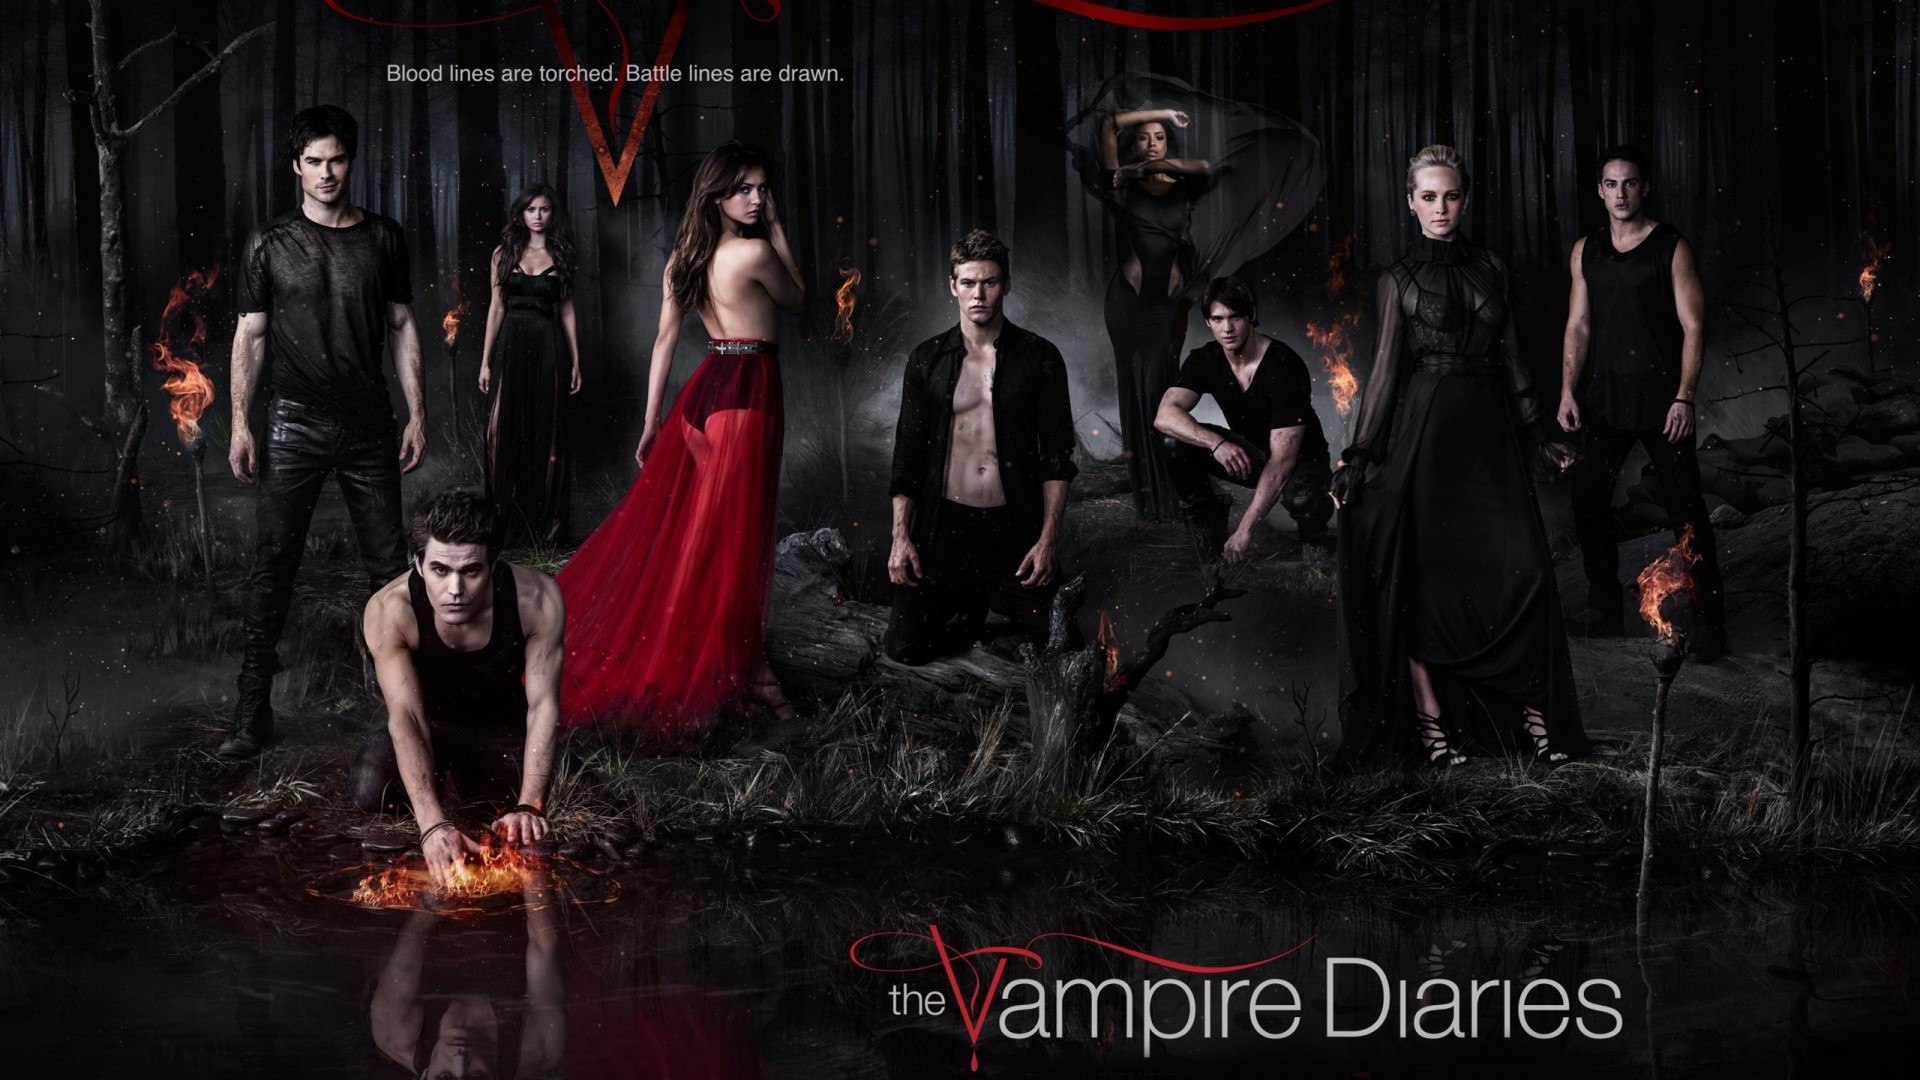 the_vampire_diaries_tv_series-1920x1080